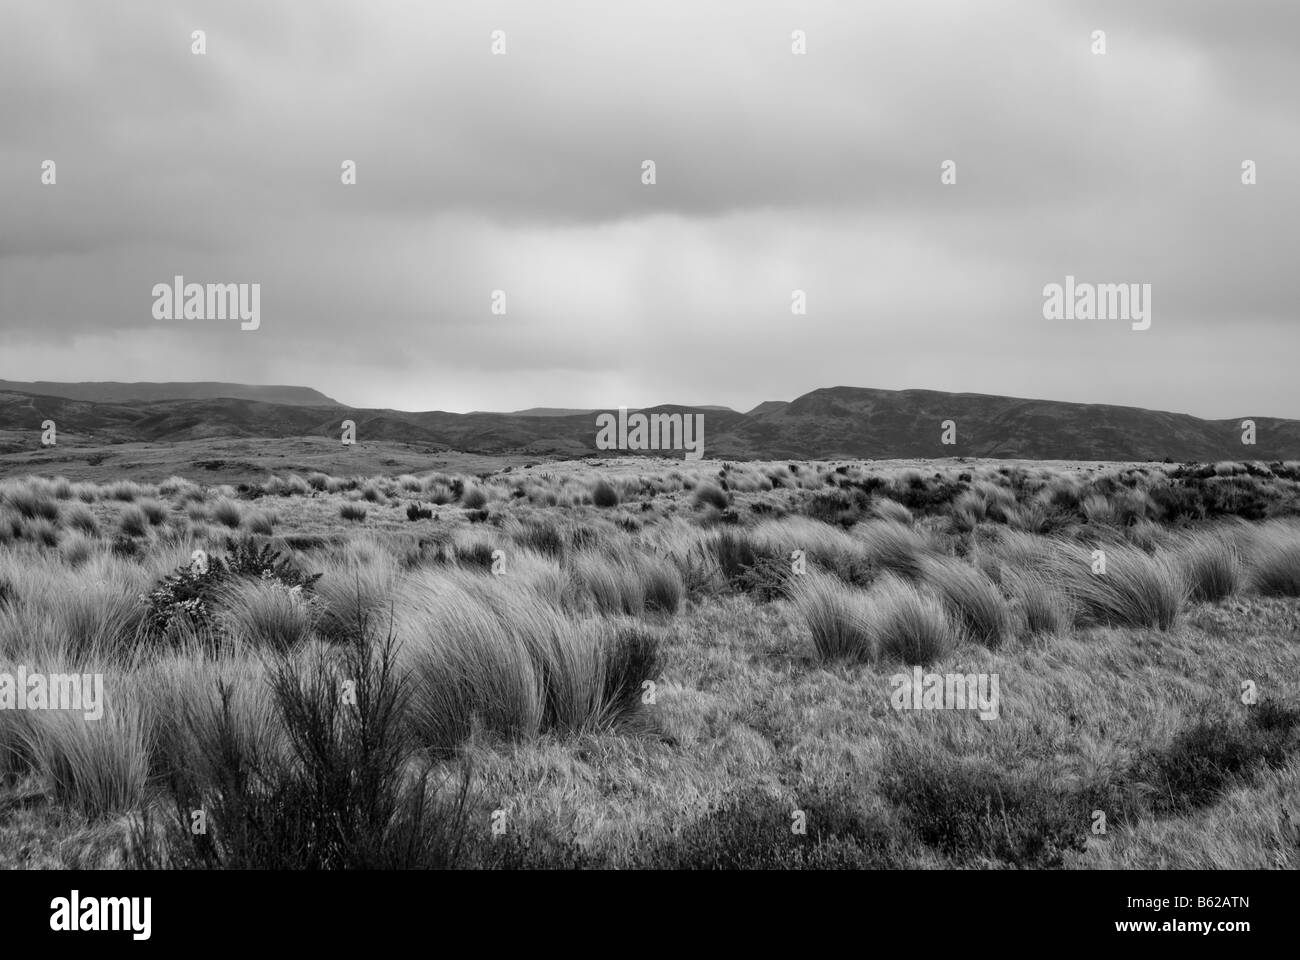 Rangipo Desert is a desert-like environment in New Zealand, located in the Ruapehu District on the North Island - Stock Image